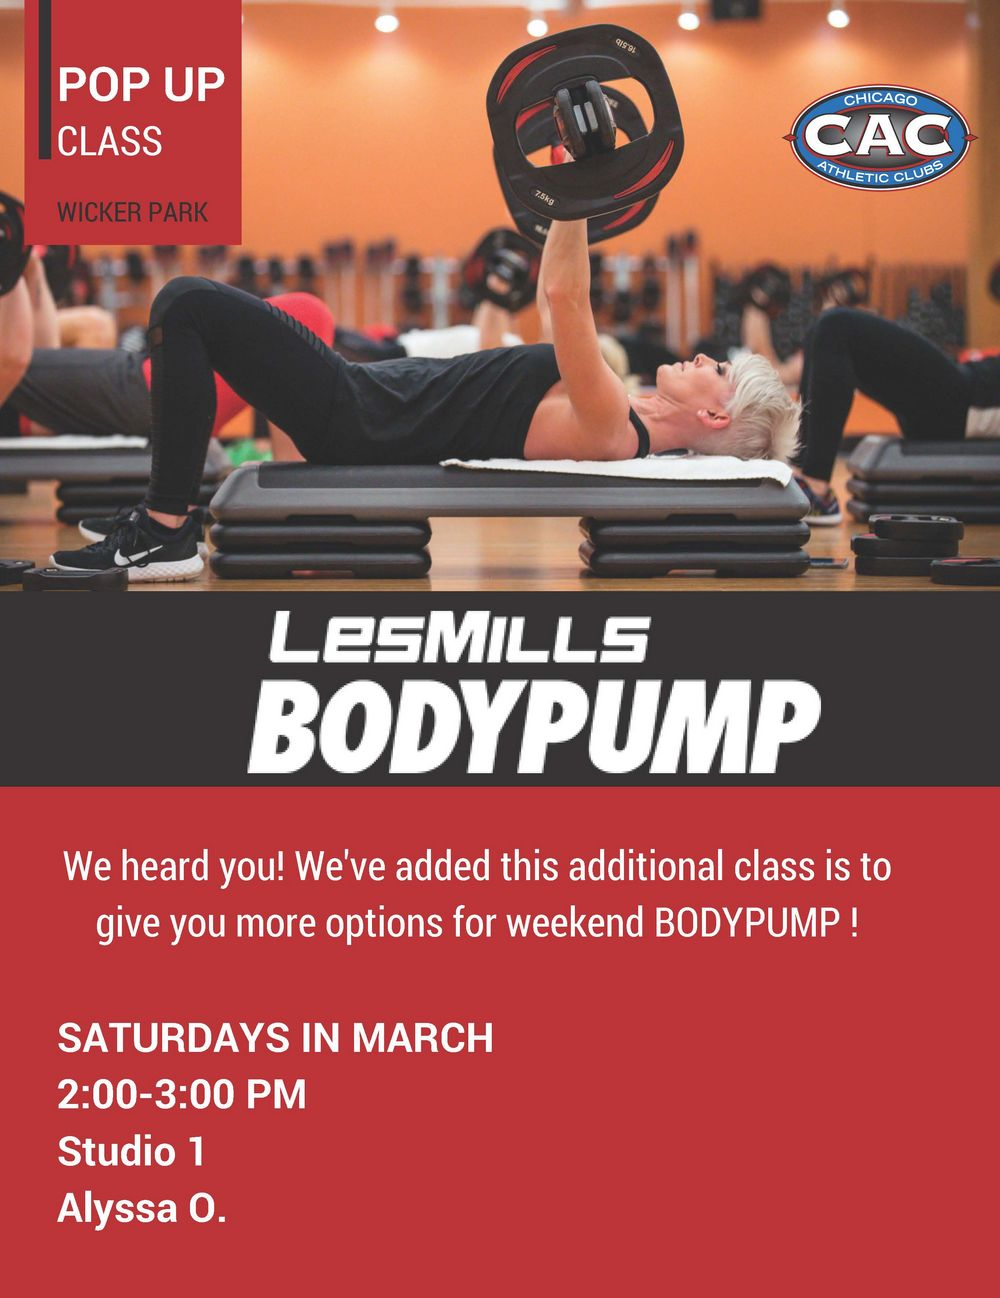 POP UP Bodypump WPAC.jpg